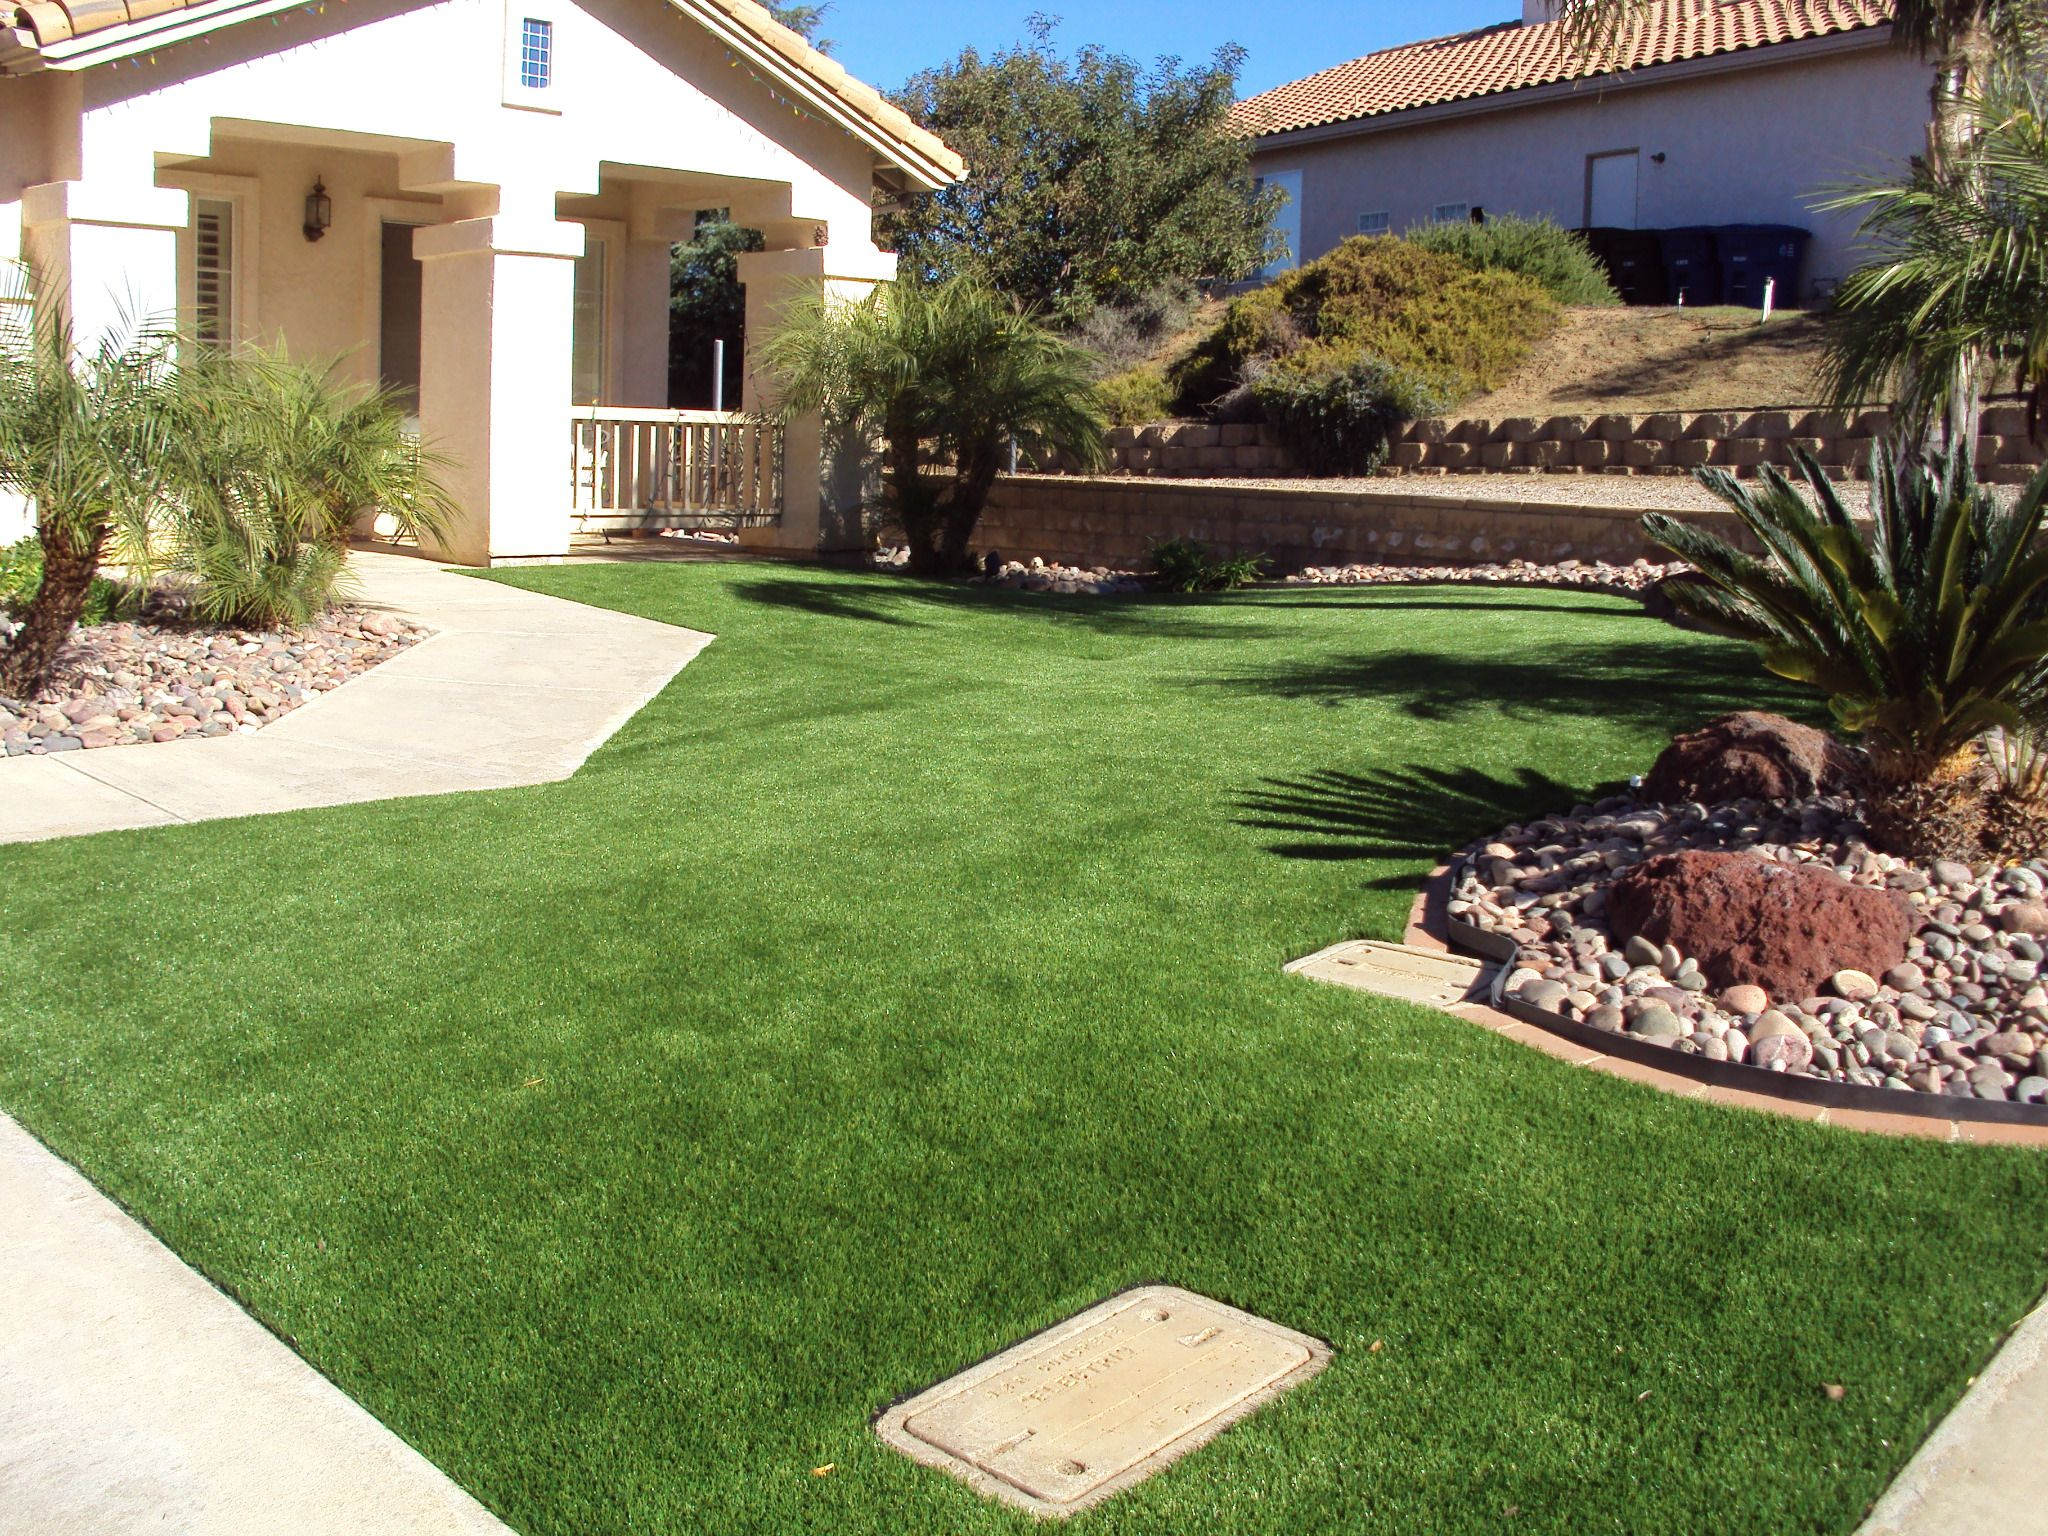 artificial turf yard. Gorgeous Front Yard From EasyTurf Www.easyturf.com L Home Outdoor Living Artificial Turf Fake Grass N